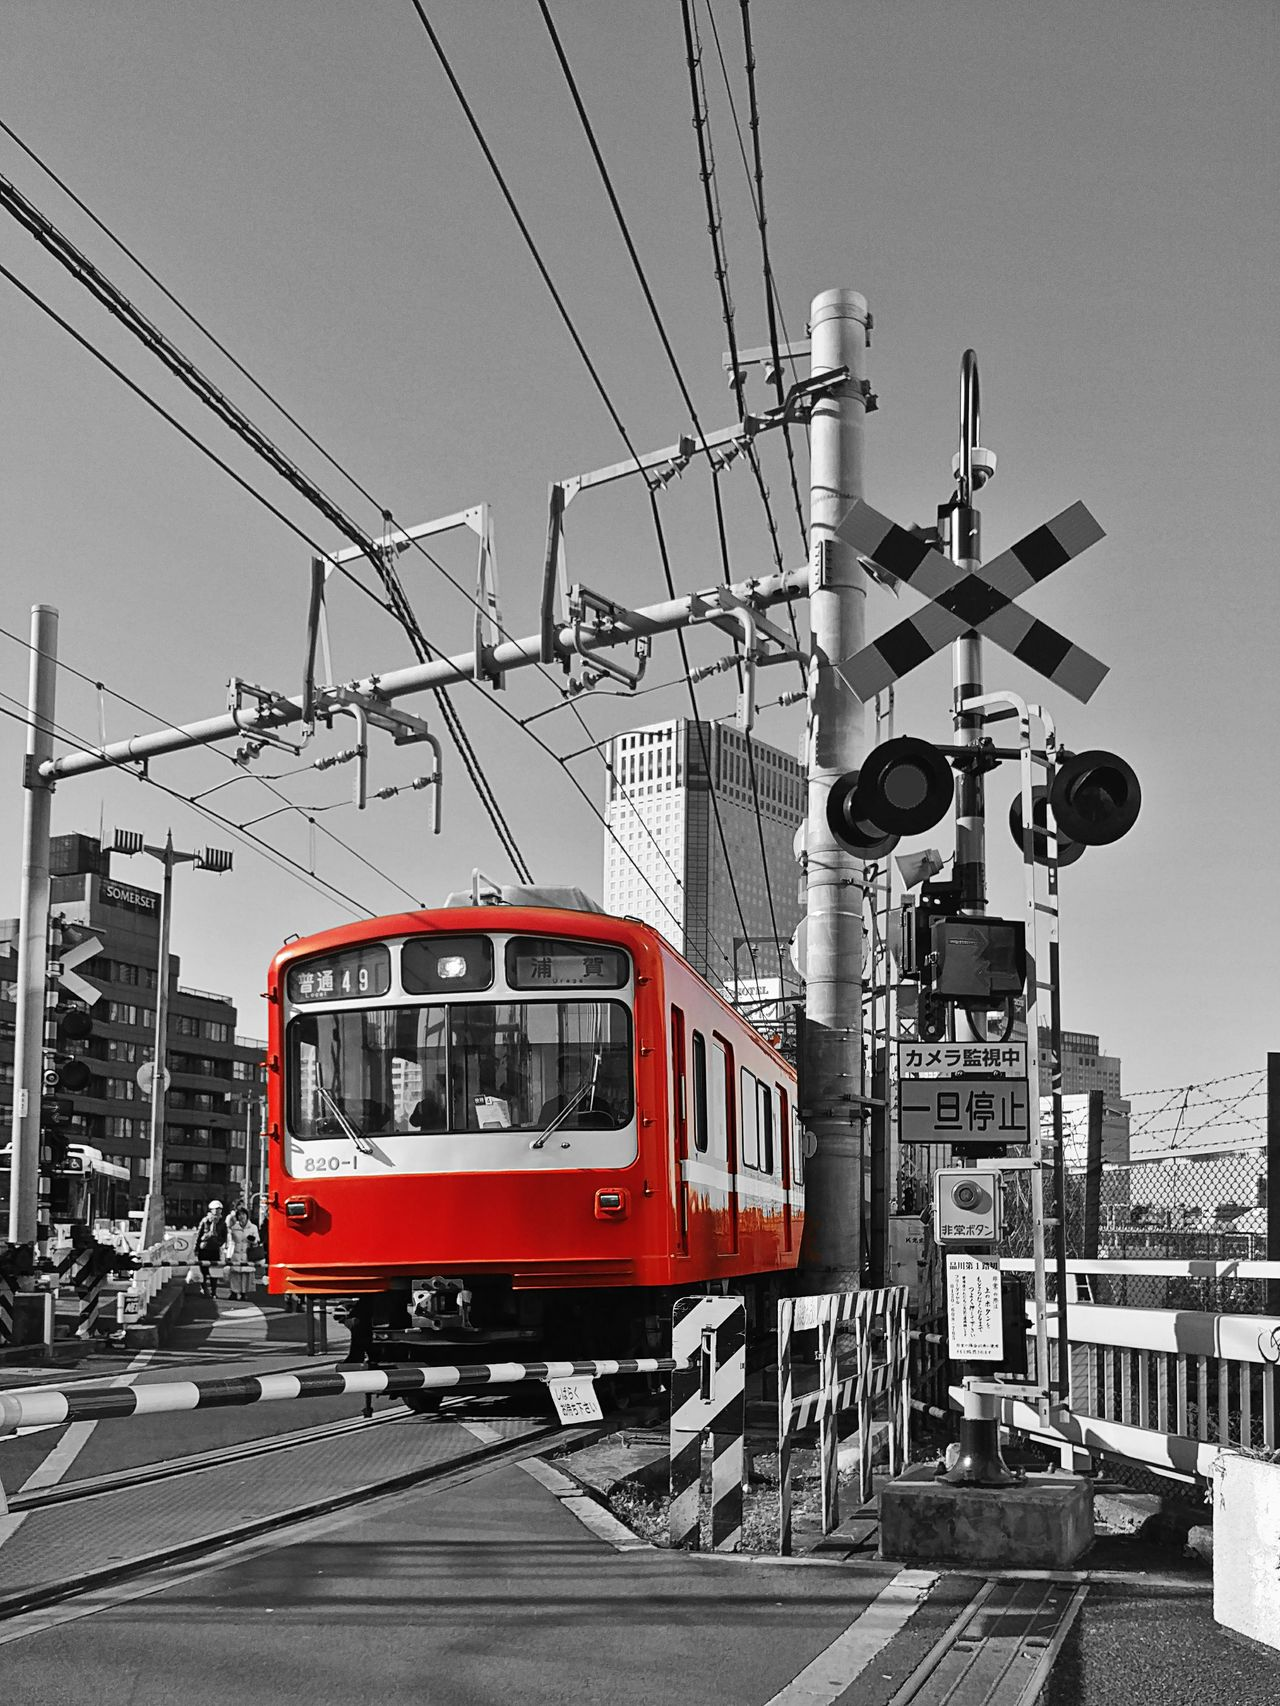 Transportation Travel Train - Vehicle Day City JapaneseStyle Tokyo,Japan Tokyo Street Photography Japanese Photography Japan Tokyo Japan Photography Nature City LED 品川 京急800形 京急 踏切